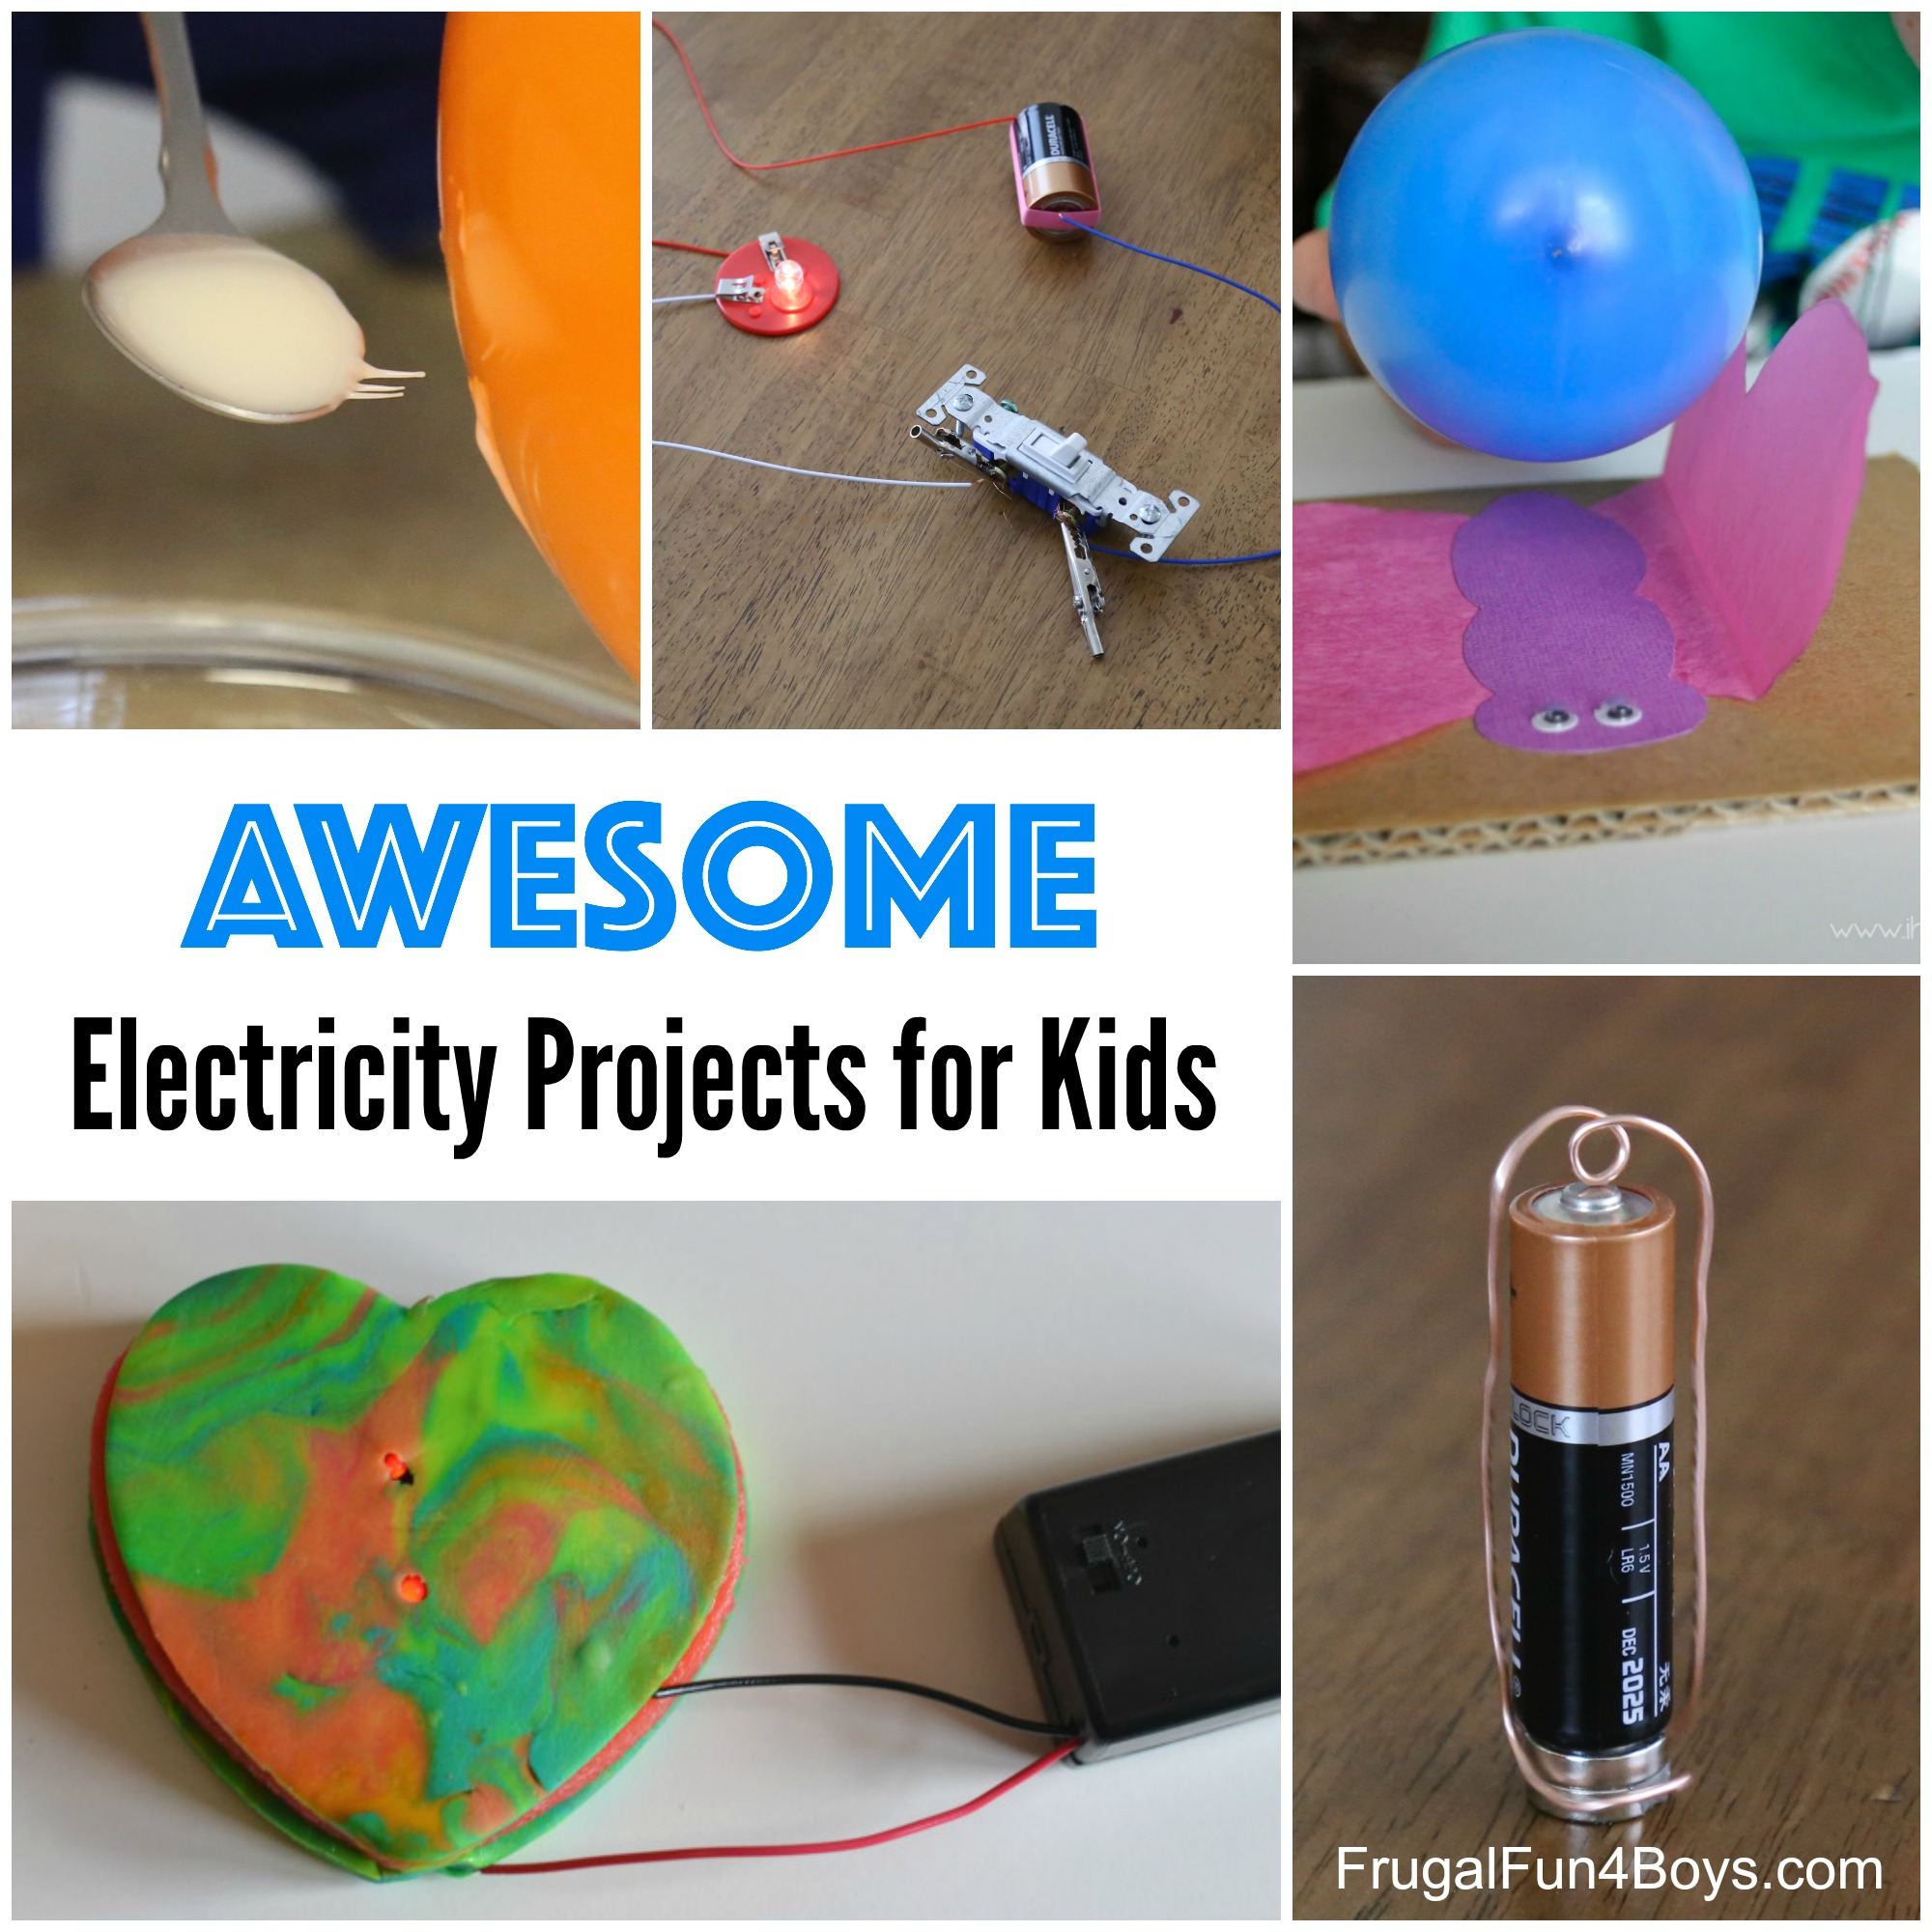 10 Awesome Electricity Projects For Kids